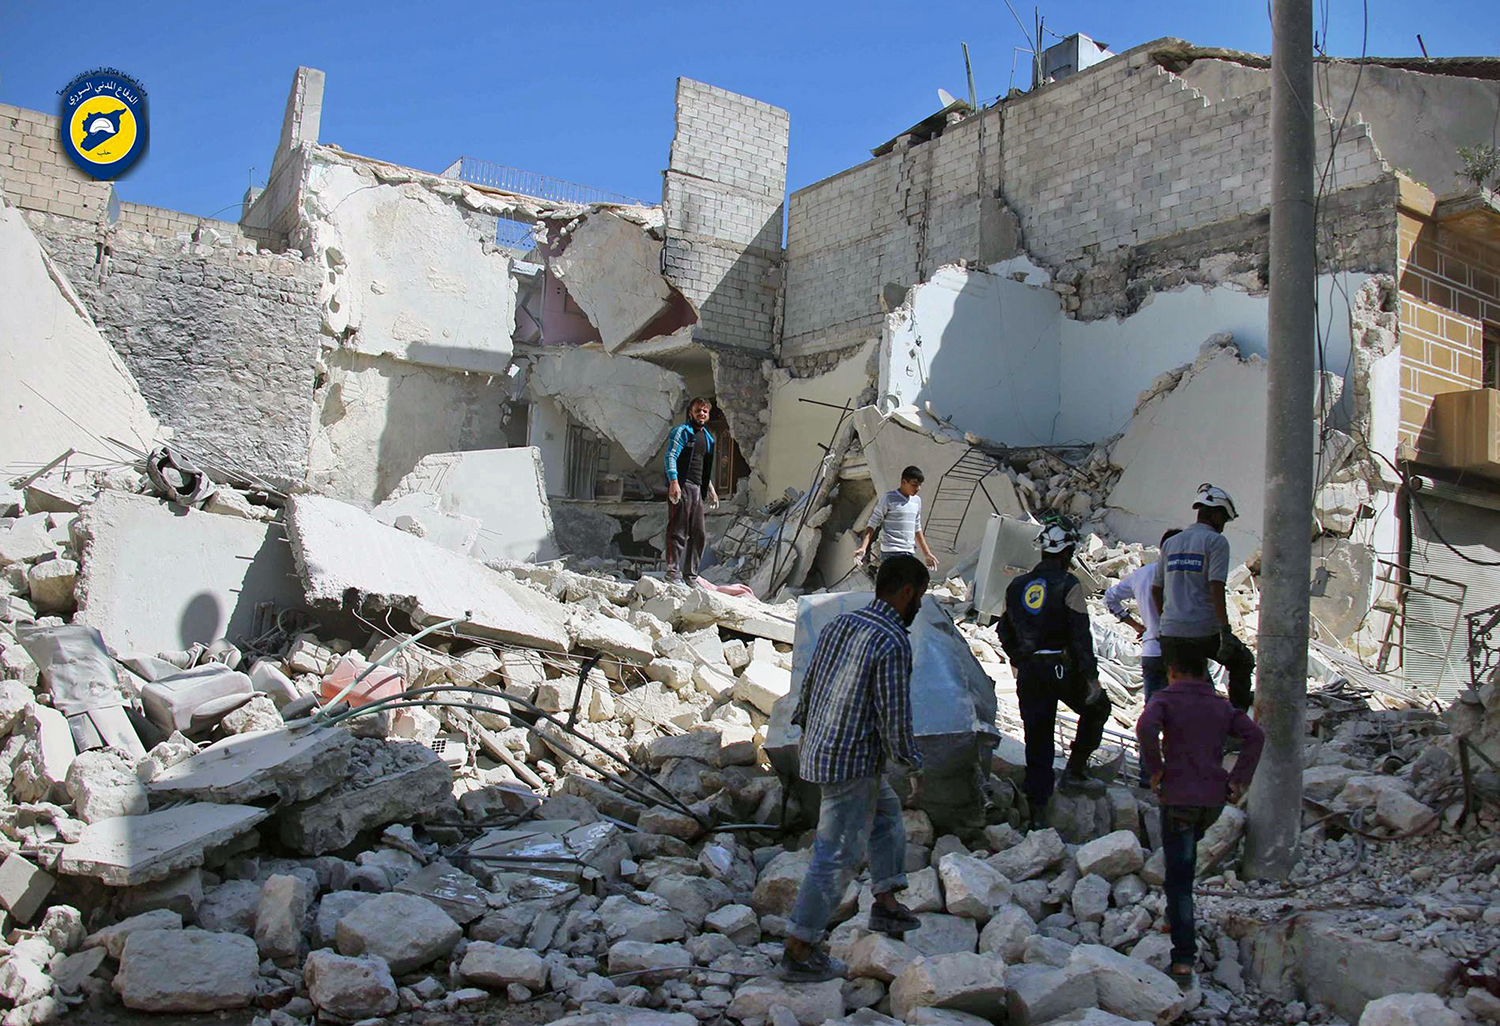 """In this photo provided by the Syrian Civil Defense group known as the White Helmets, members of the Civil Defense group and residents inspect damaged buildings after airstrikes hit the Bustan al-Qasr neighborhood in Aleppo, Syria, Sunday, Sept. 25, 2016. A broad coalition of Syrian rebels denounced international negotiations for peace as """"meaningless"""" on Sunday, as the U.N. Security Council prepared to convene an emergency meeting about the spiraling violence in Syria. (Syrian Civil Defense White Helmets via AP)"""